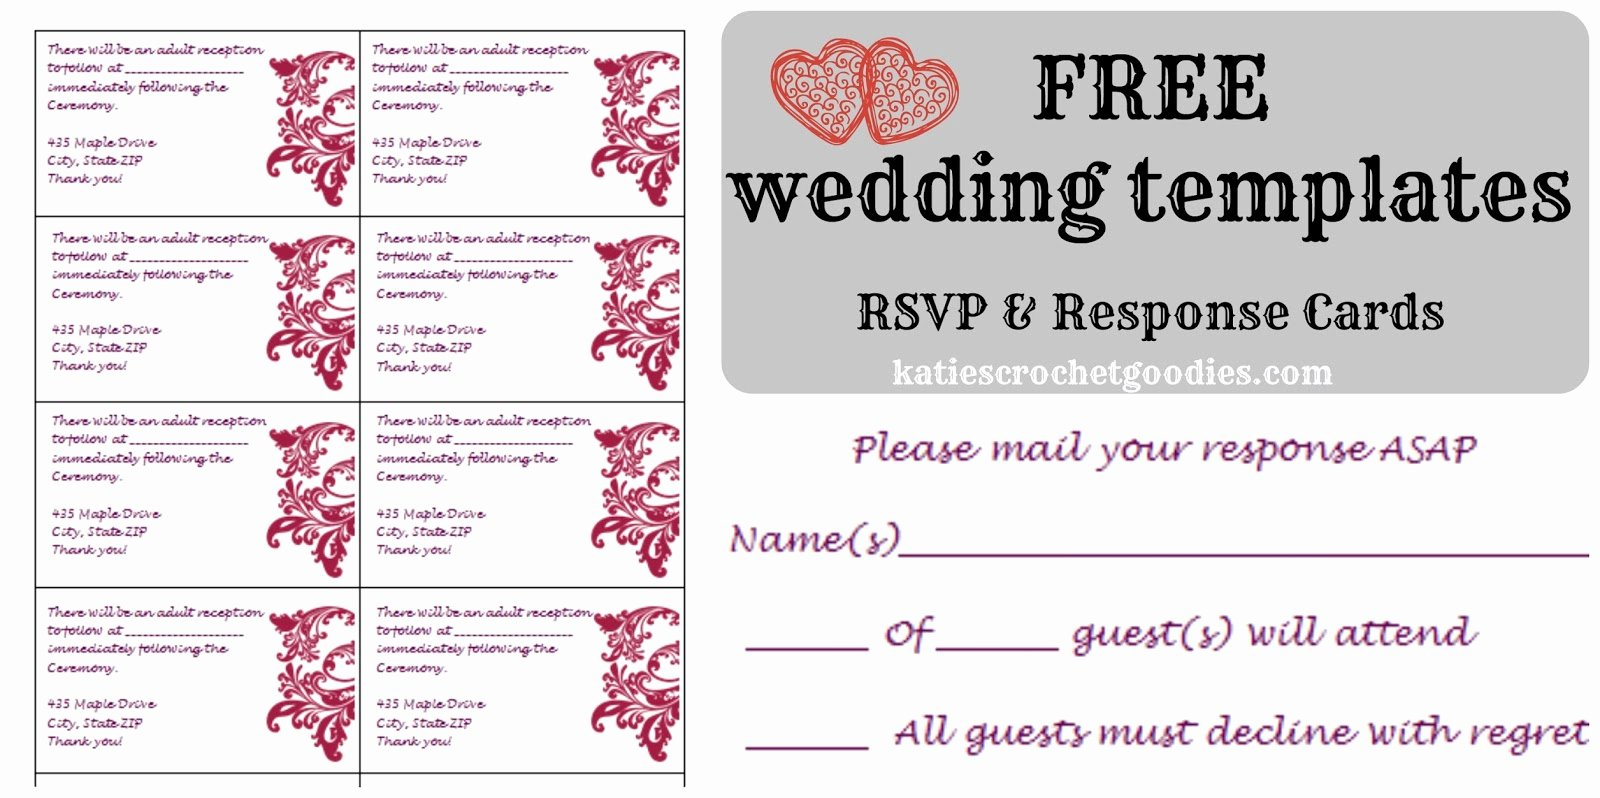 Free Card Templates Word Best Of Free Wedding Templates Rsvp & Reception Cards Katie S